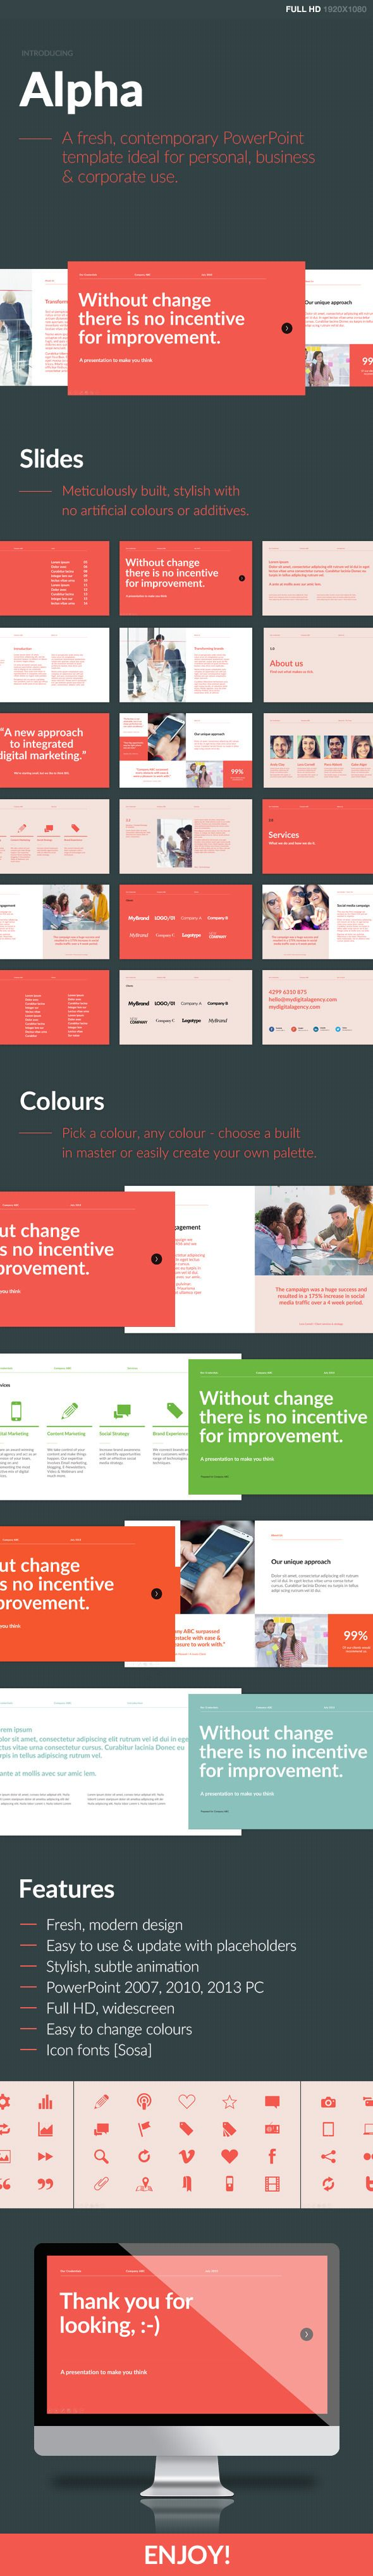 Alpha PowerPoint Template (PowerPoint Templates)